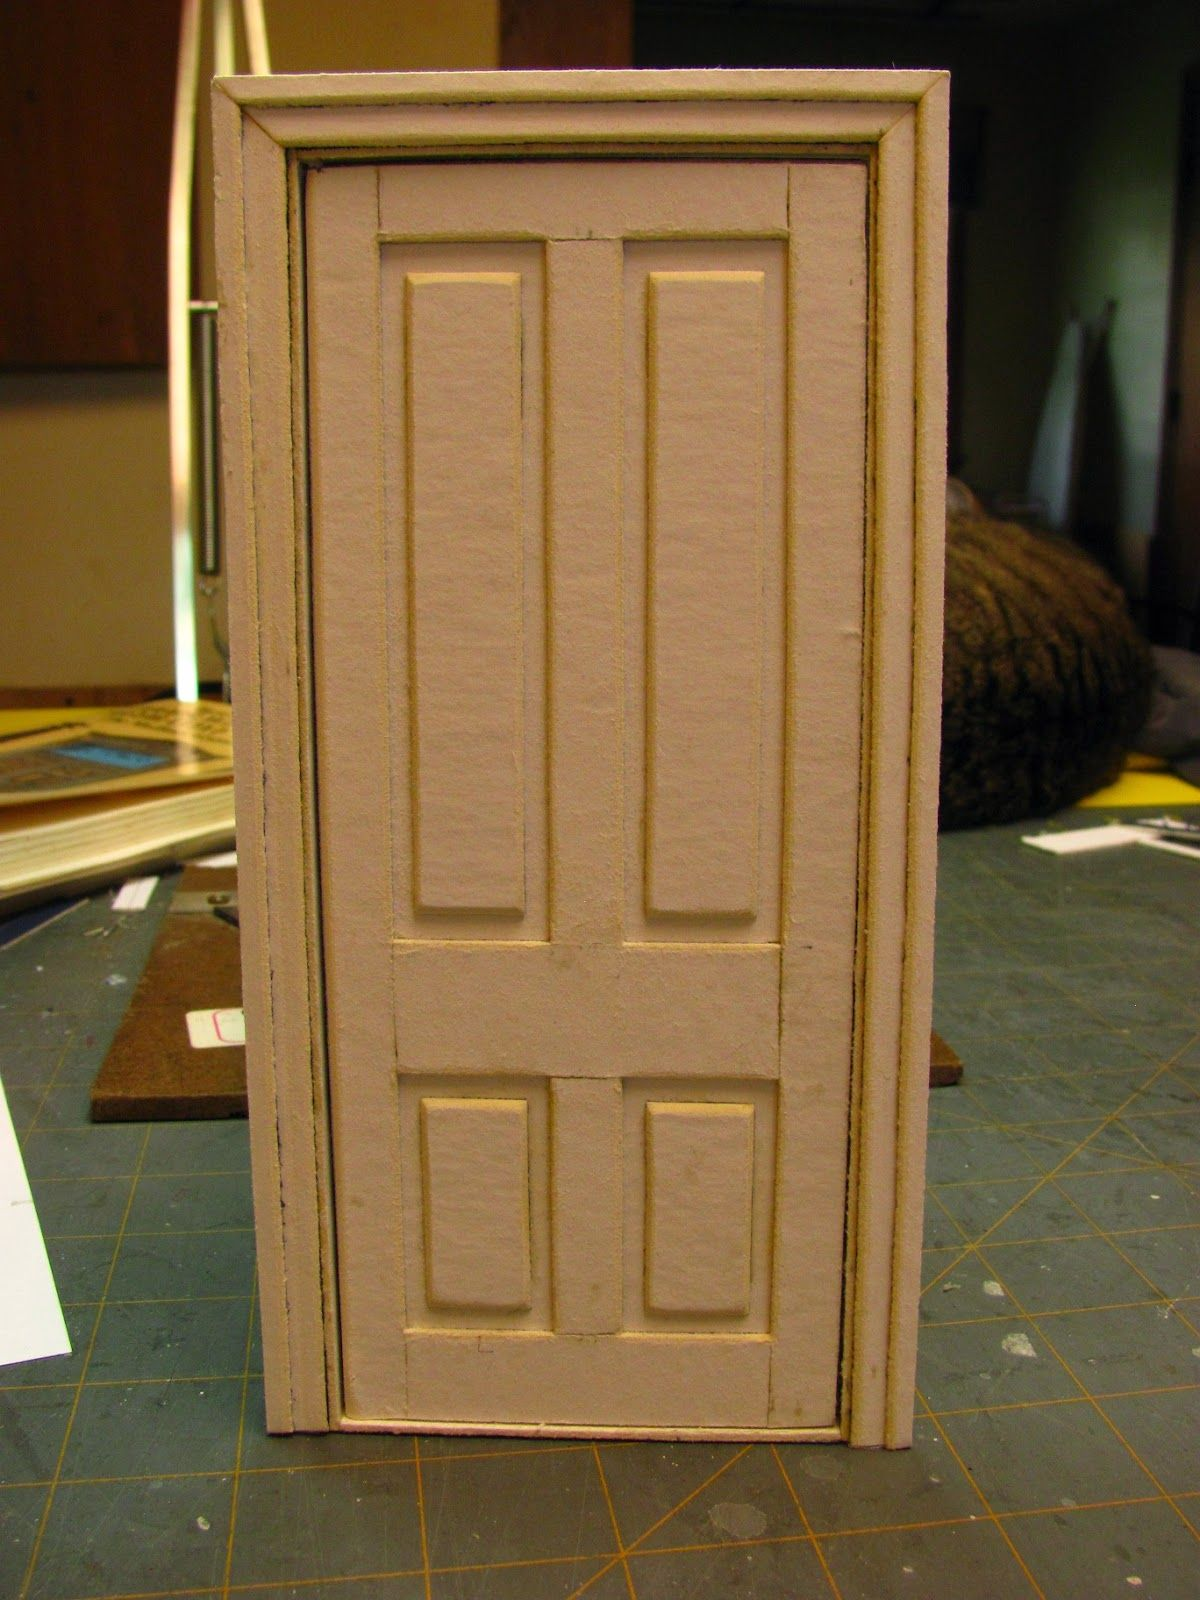 1 Inch Scale Dollhouse Interior Door And Jamb Tutorial How To Make